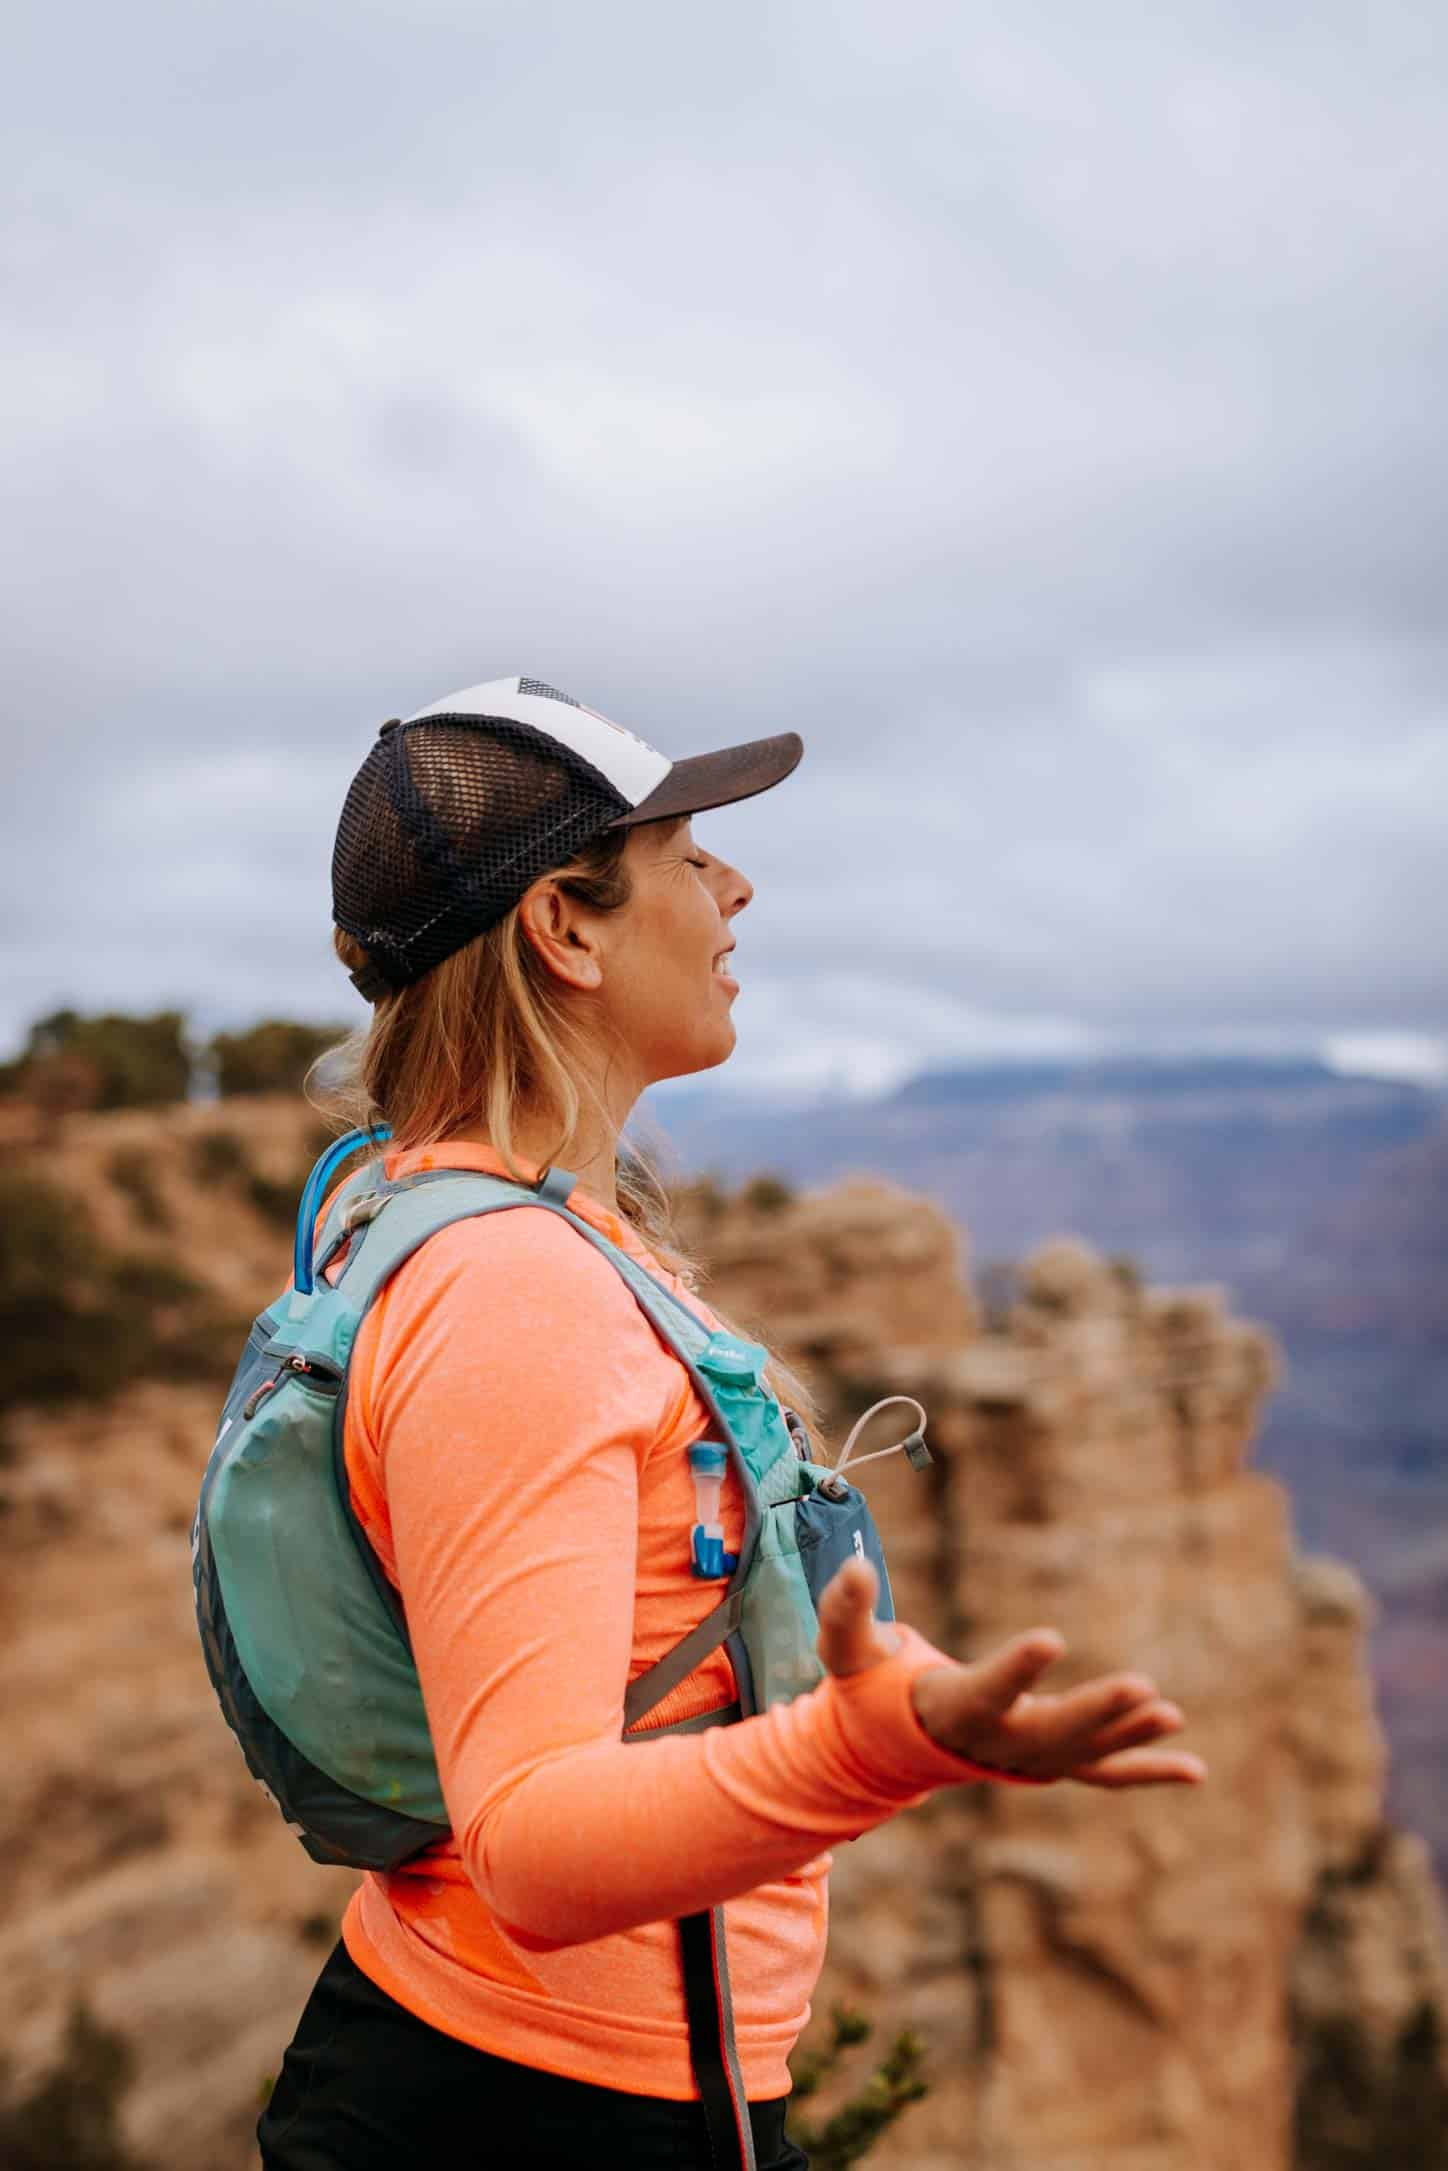 Hiking the Grand Canyon Serenity | Simple Green Smoothies